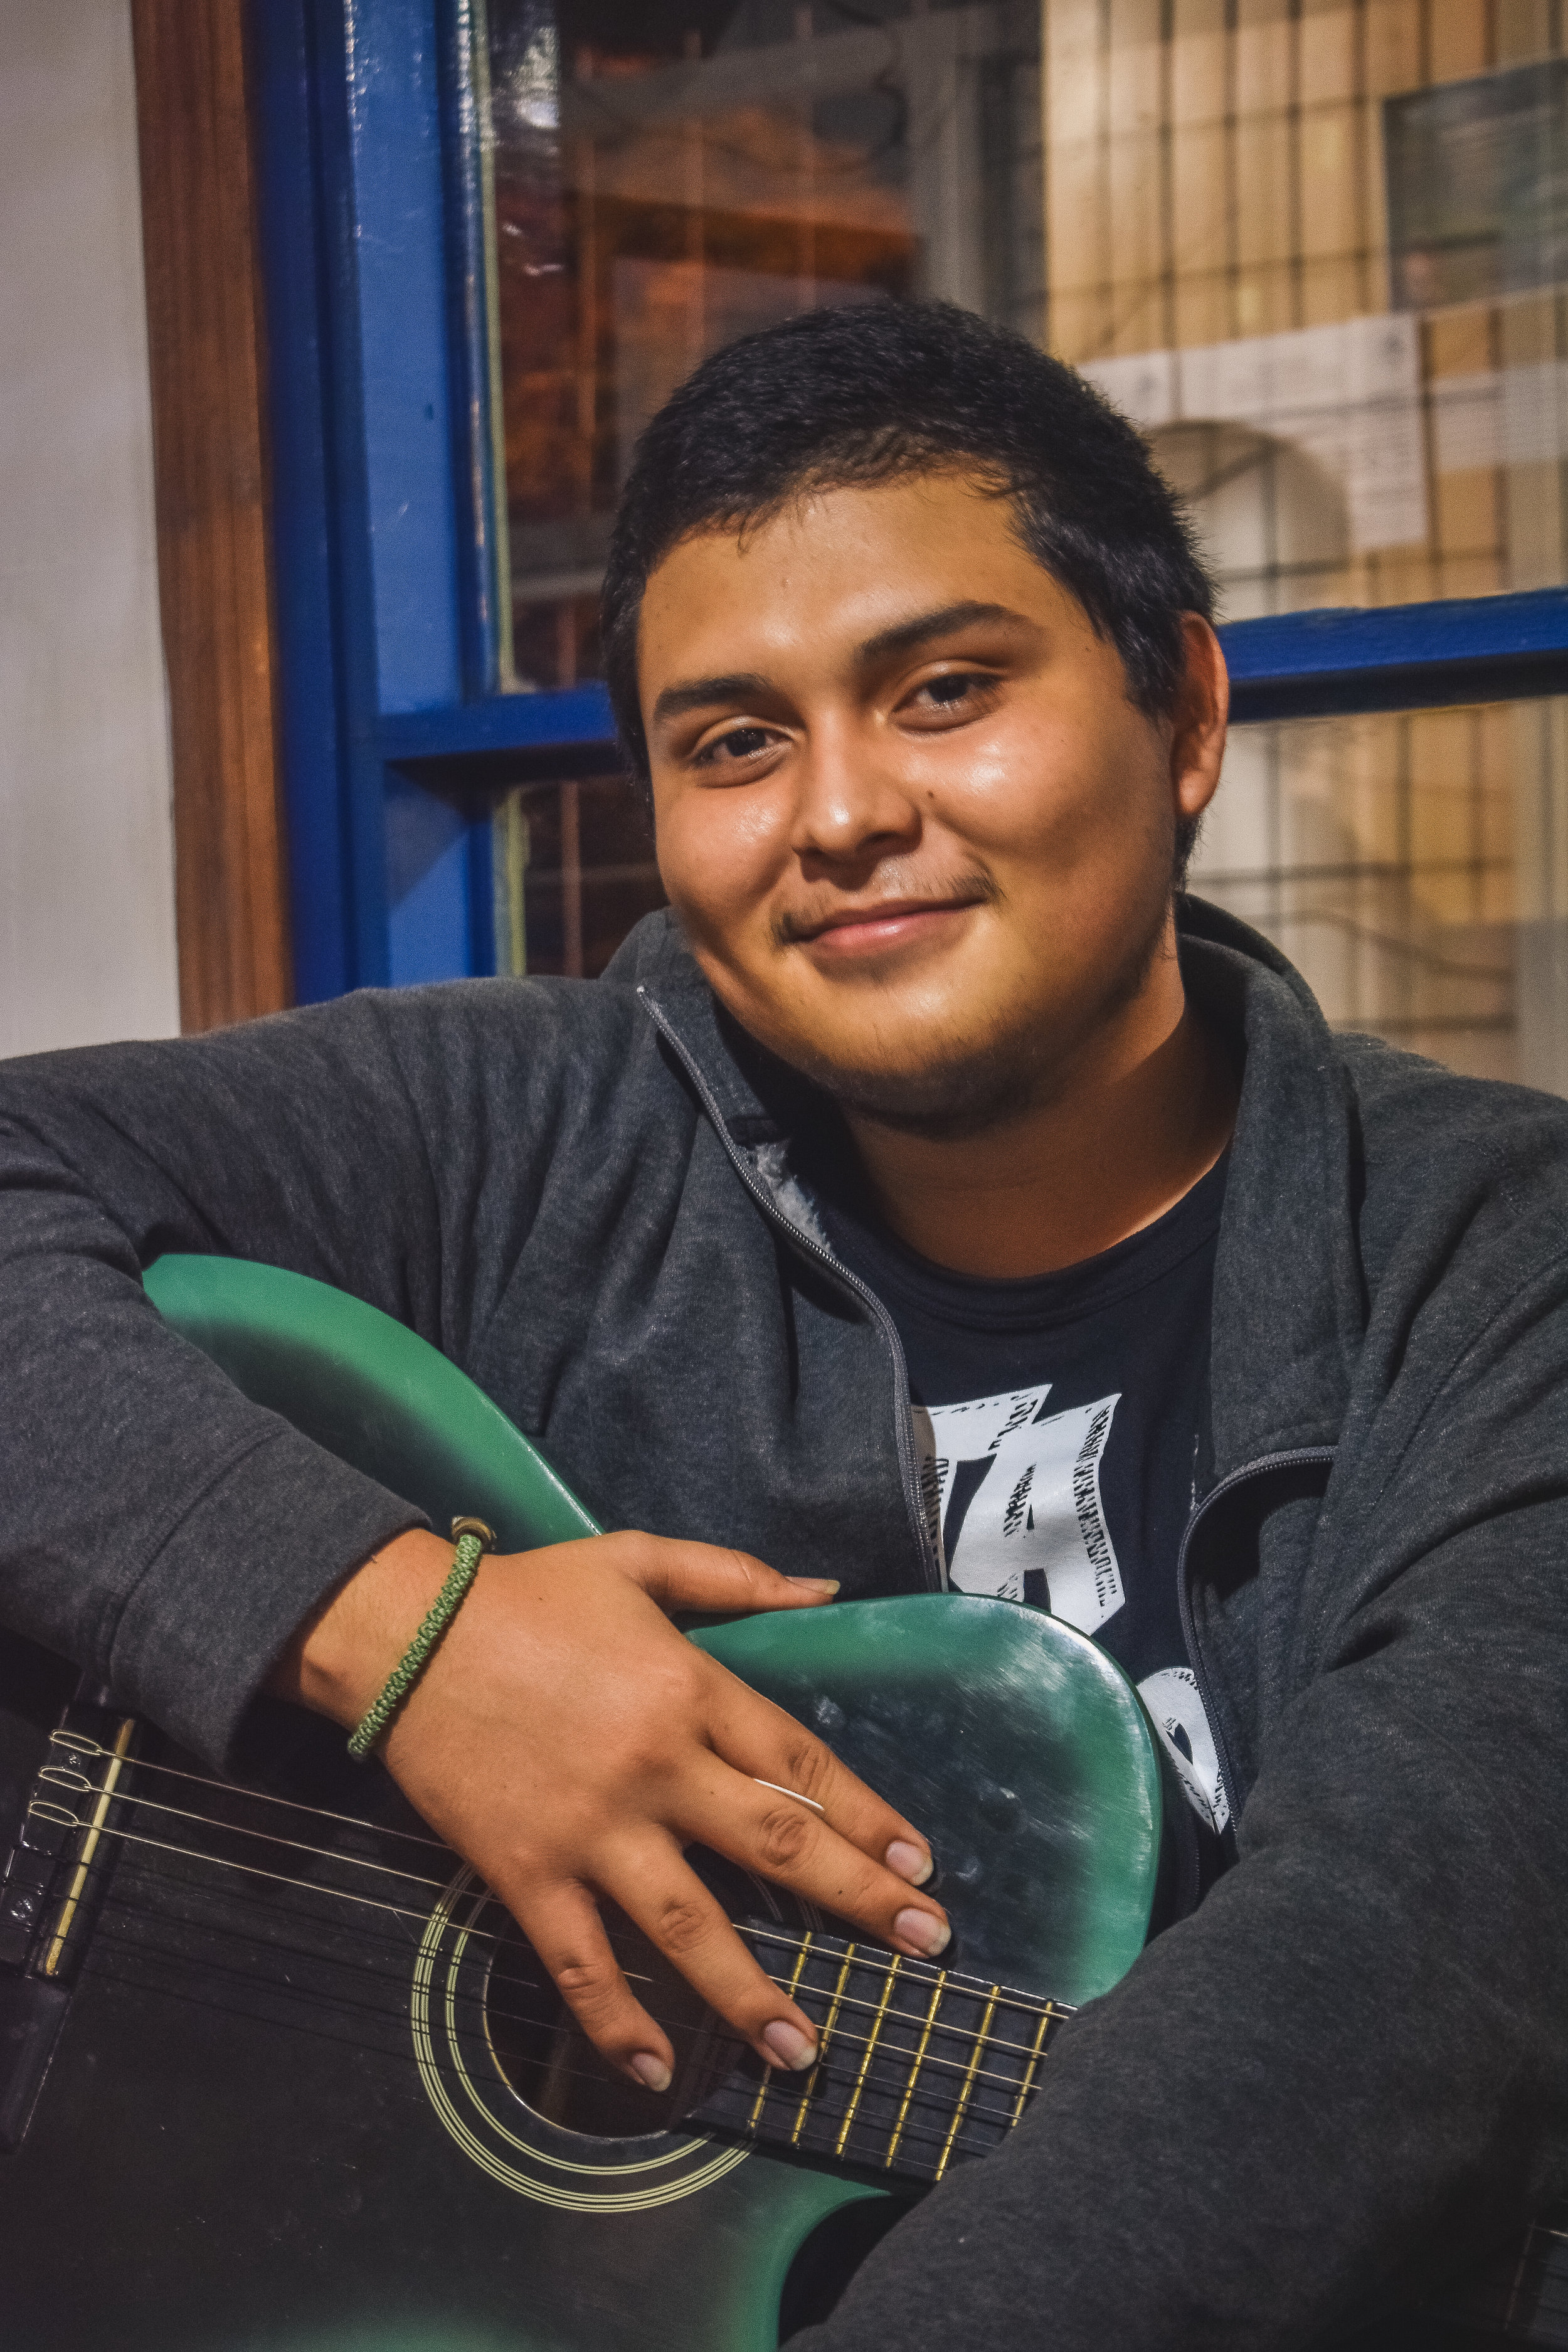 Fleeing violence, Nicaraguan student finds new life in Costa Rica -